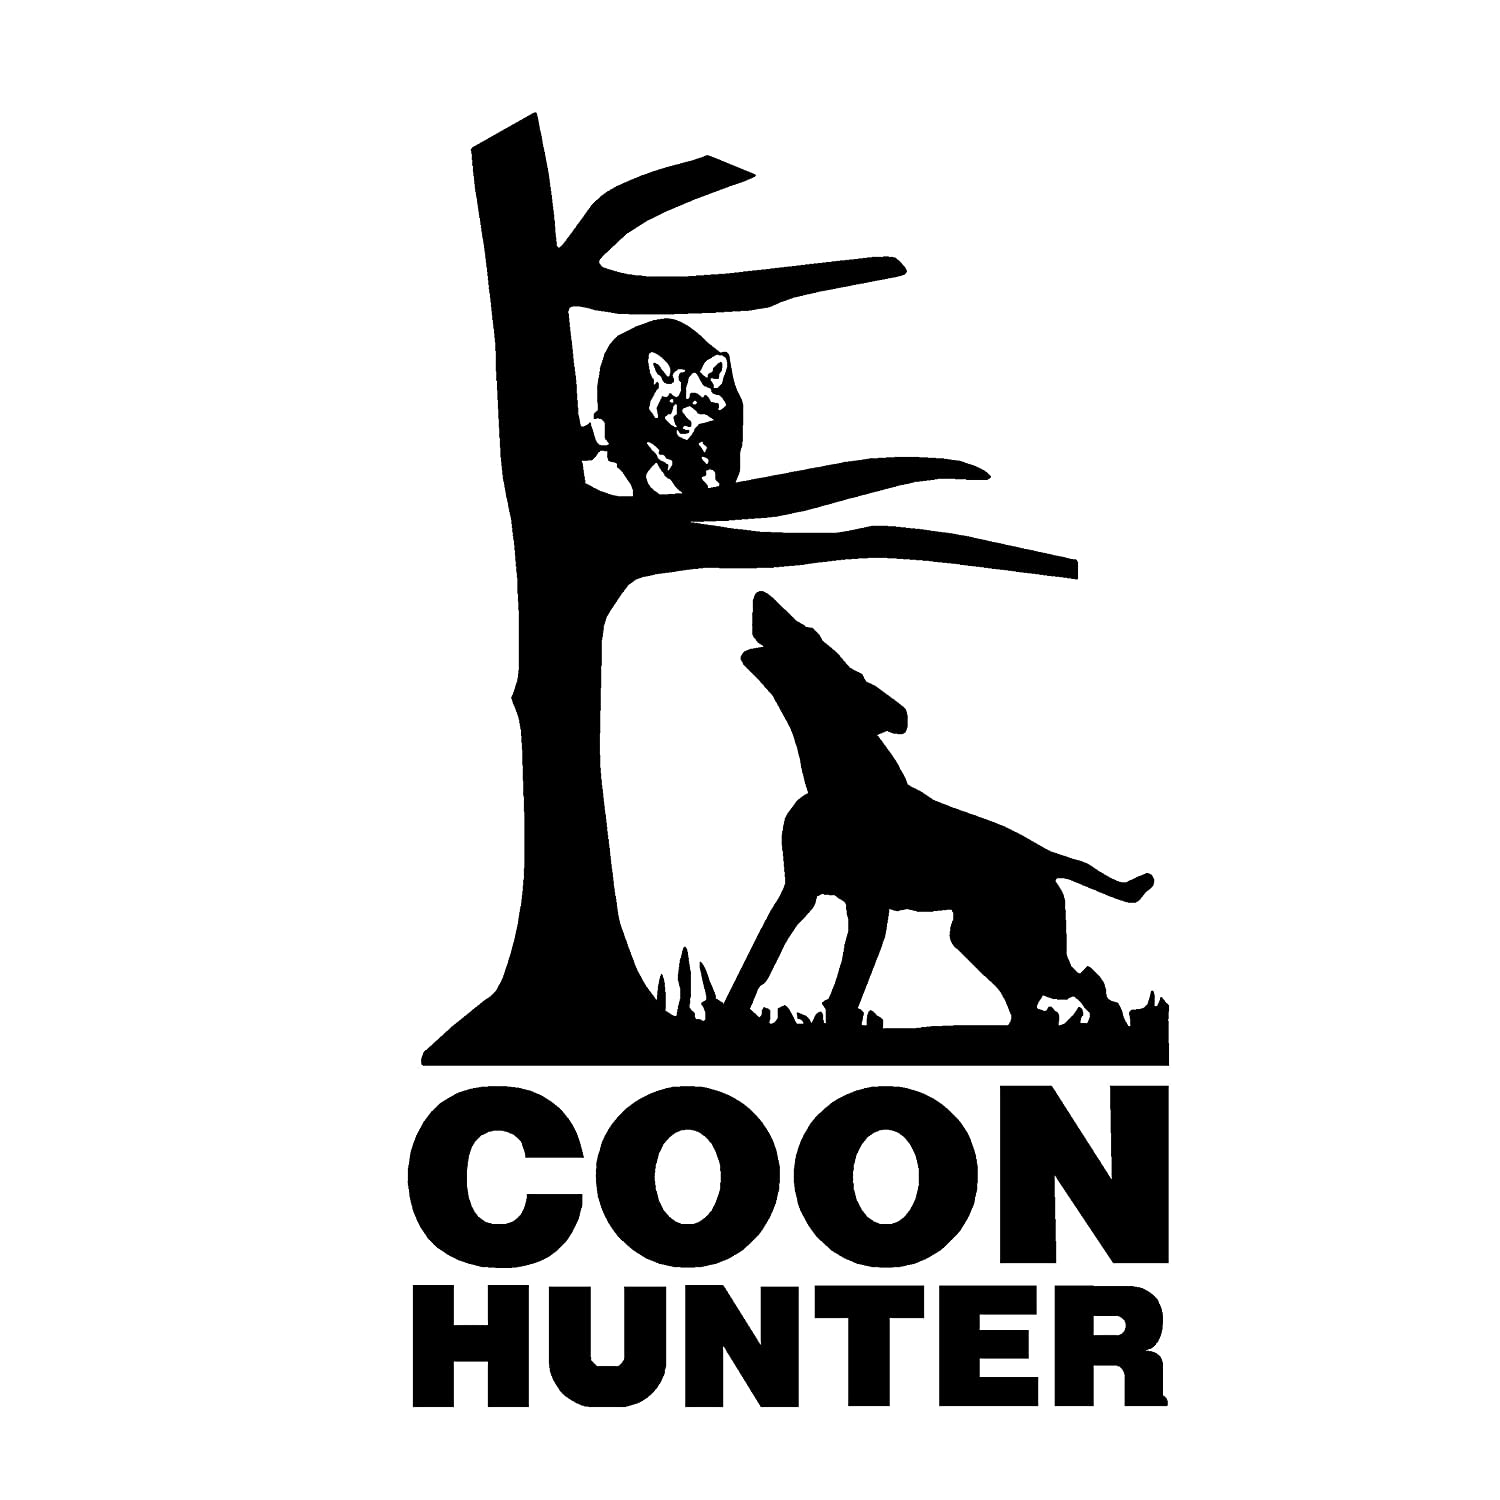 Amazon com coon hunter deal coon hunter sticker coon hunter shirts 1216 by waterfowldecals small black automotive